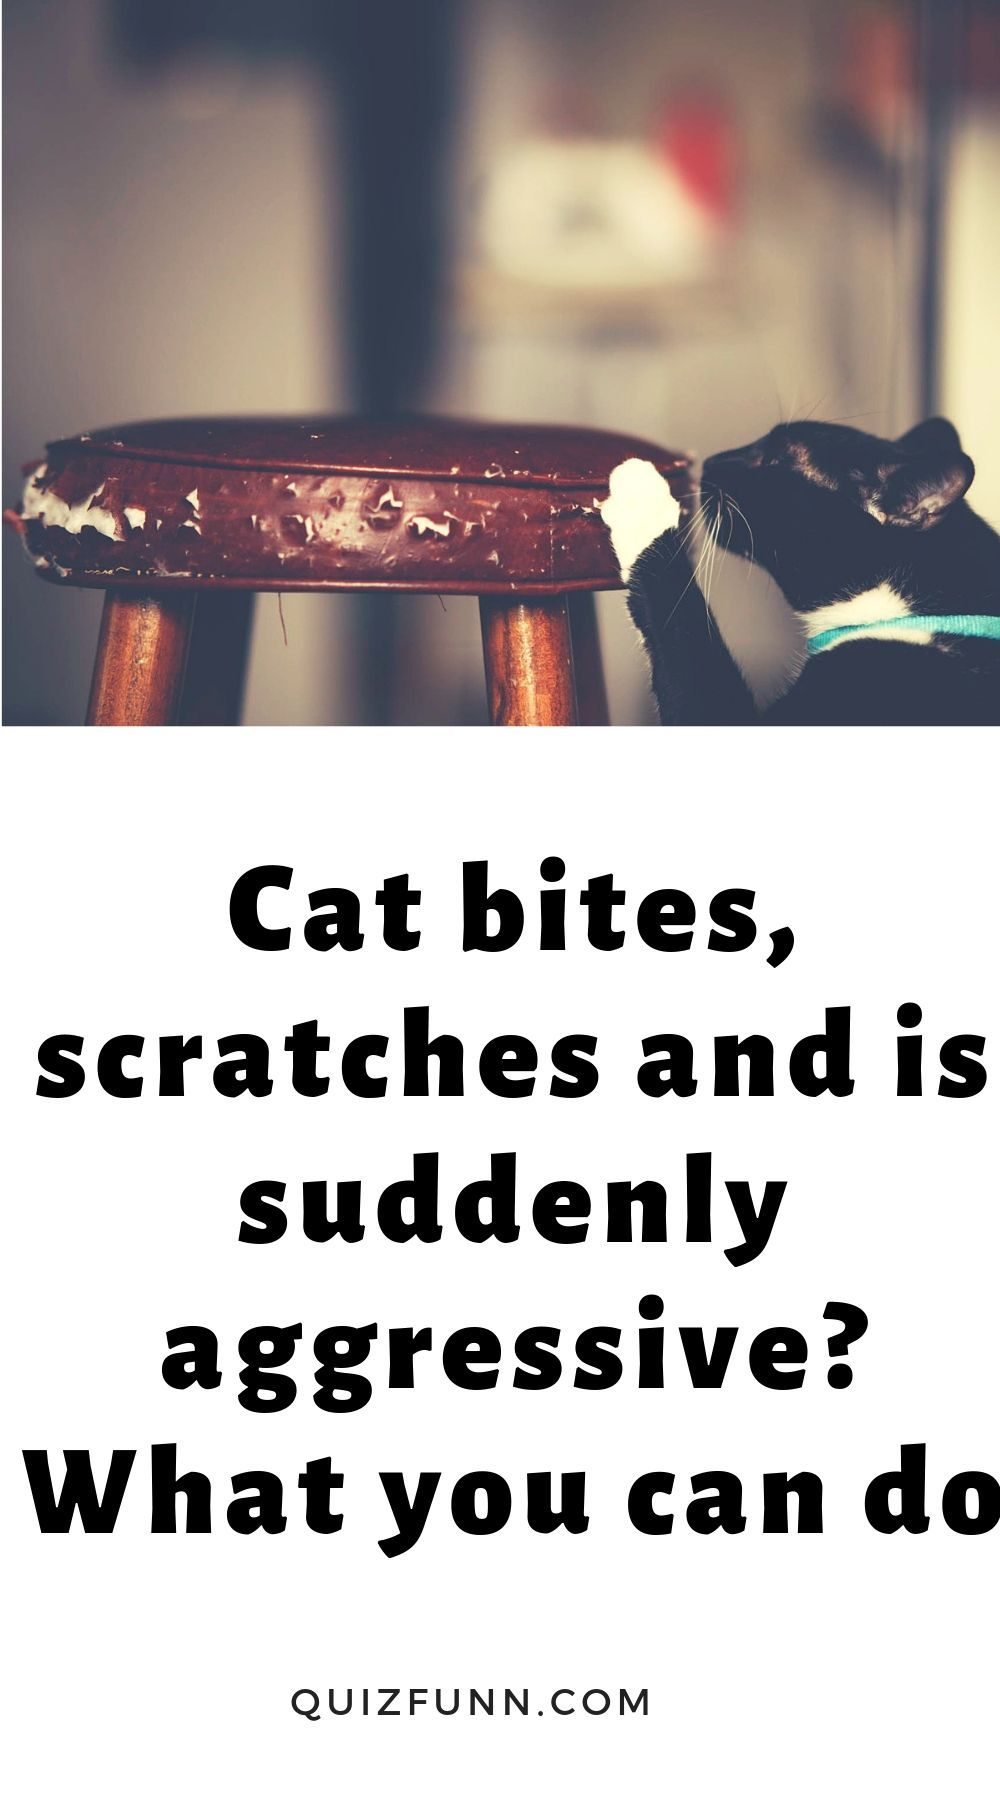 Cat Bites Scratches And Is Suddenly Aggressive What You Can Do Your Cat Suddenly Bites And Scratches You Without Warning It S Almost A Cat Biting Cats What You Can Do